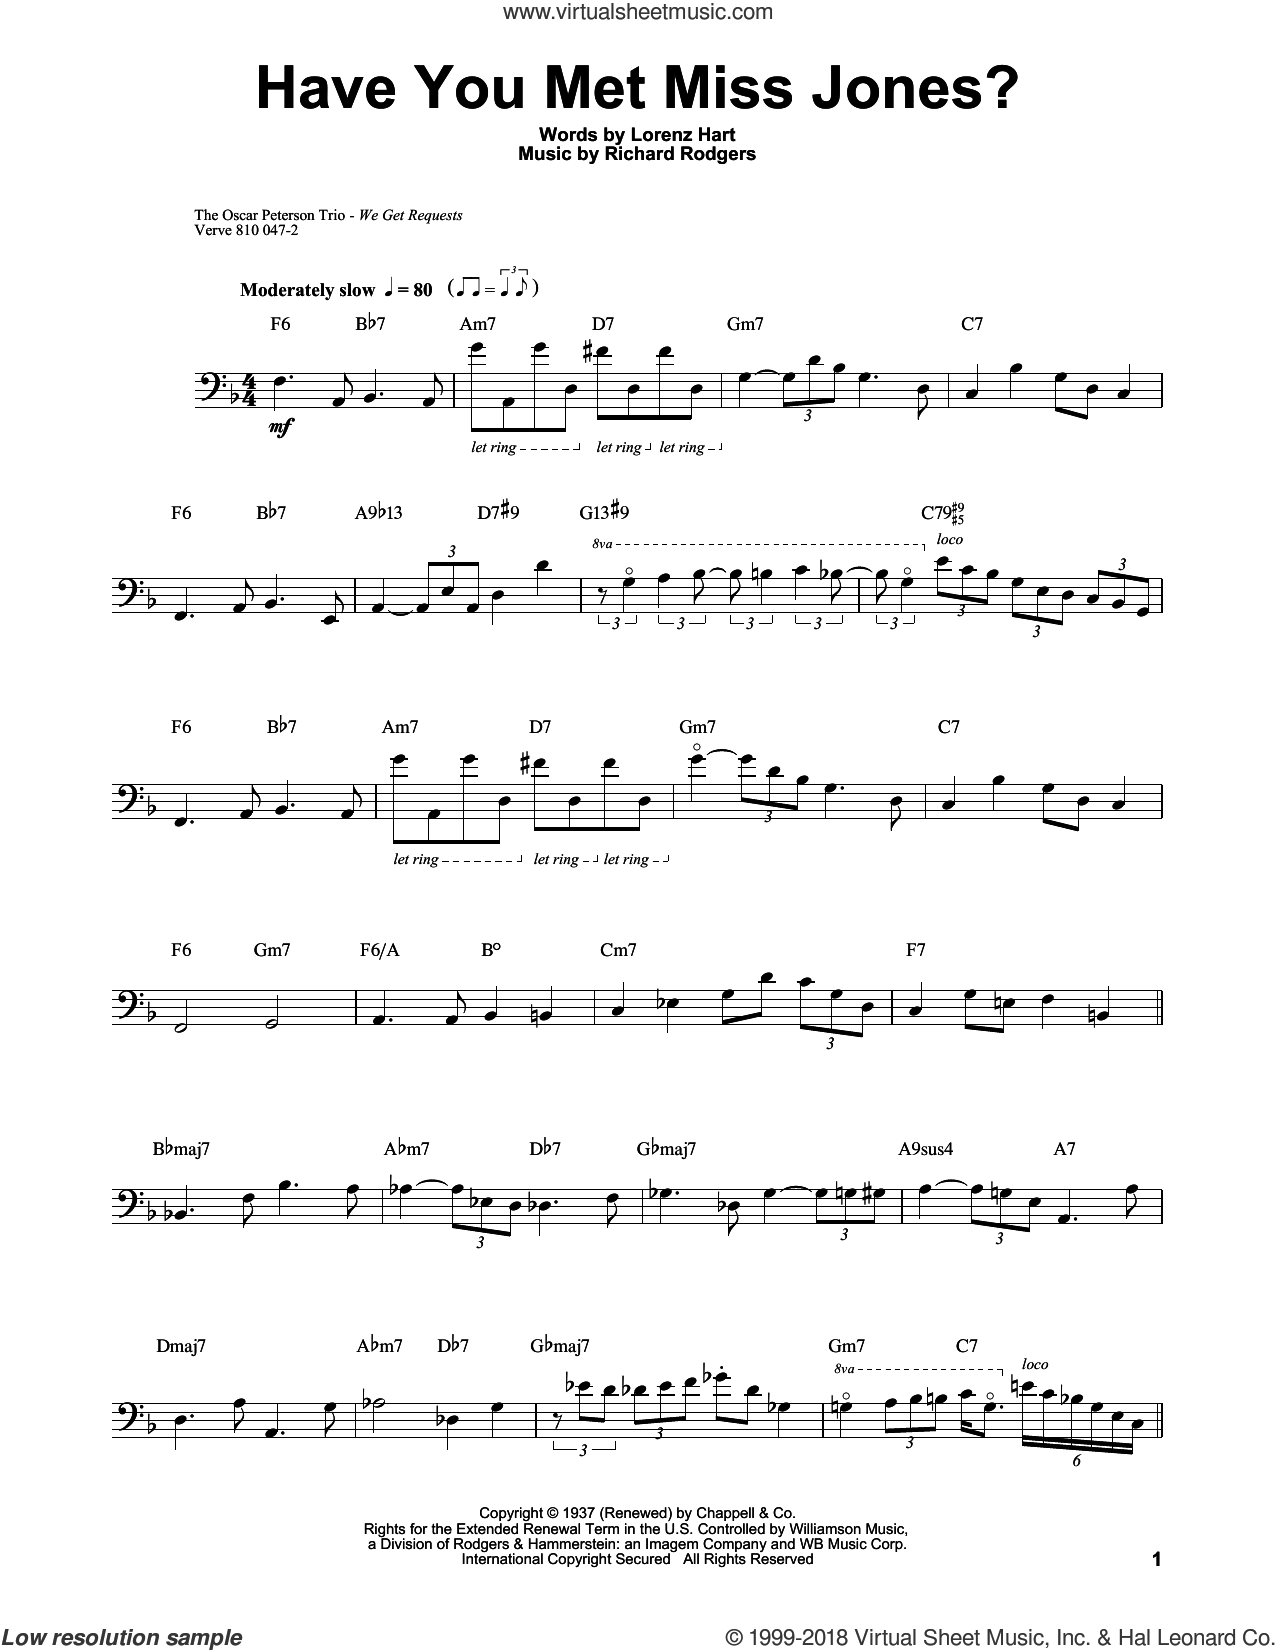 Have You Met Miss Jones? sheet music for brass ensemble (transcription) by Ray Brown, Lorenz Hart and Richard Rodgers, intermediate skill level